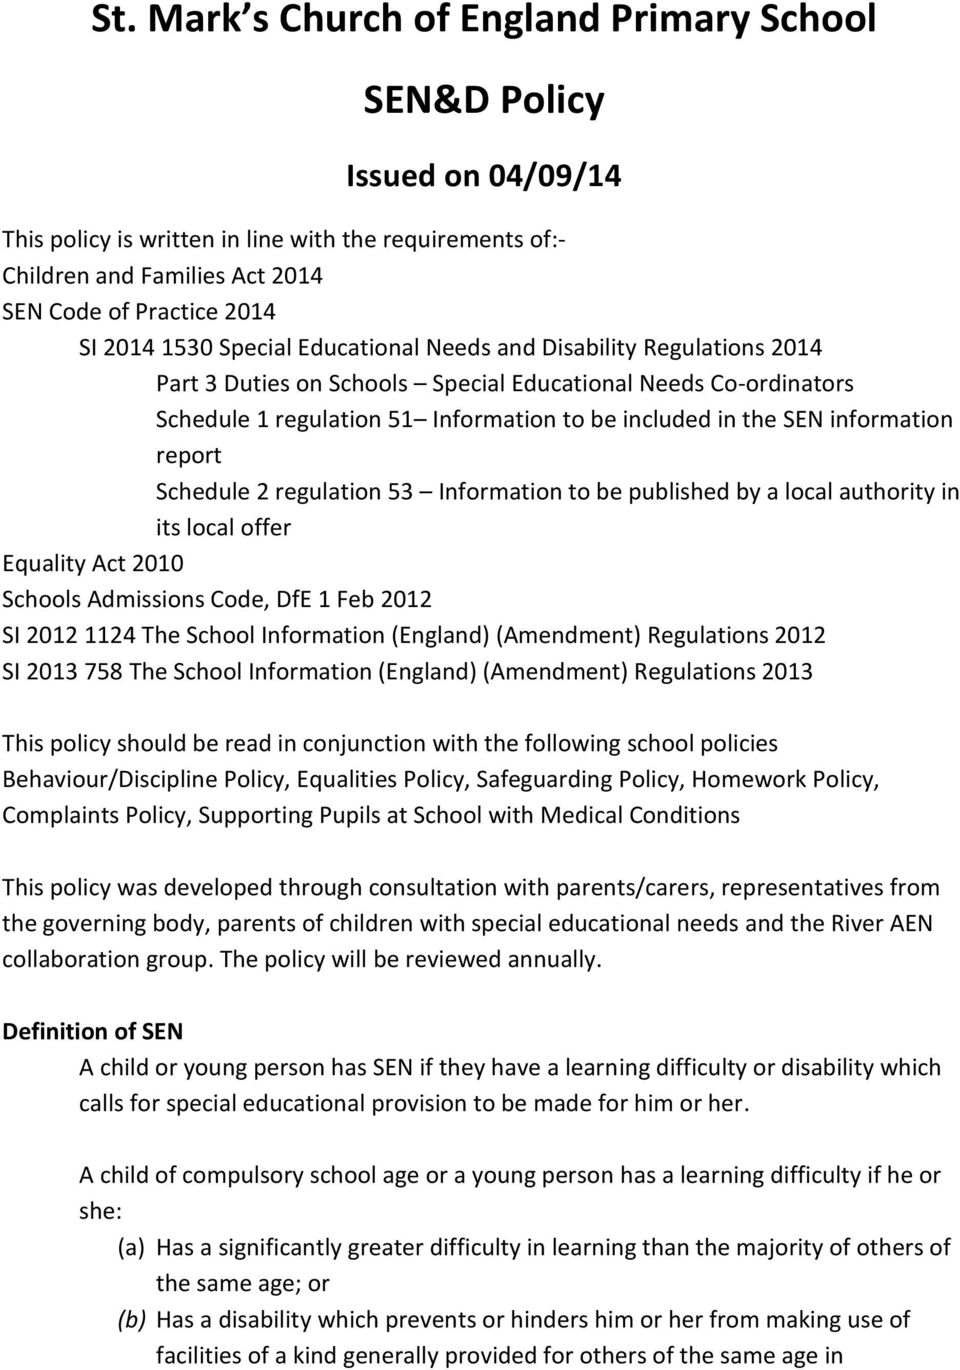 information report Schedule 2 regulation 53 Information to be published by a local authority in its local offer Equality Act 2010 Schools Admissions Code, DfE 1 Feb 2012 SI 2012 1124 The School